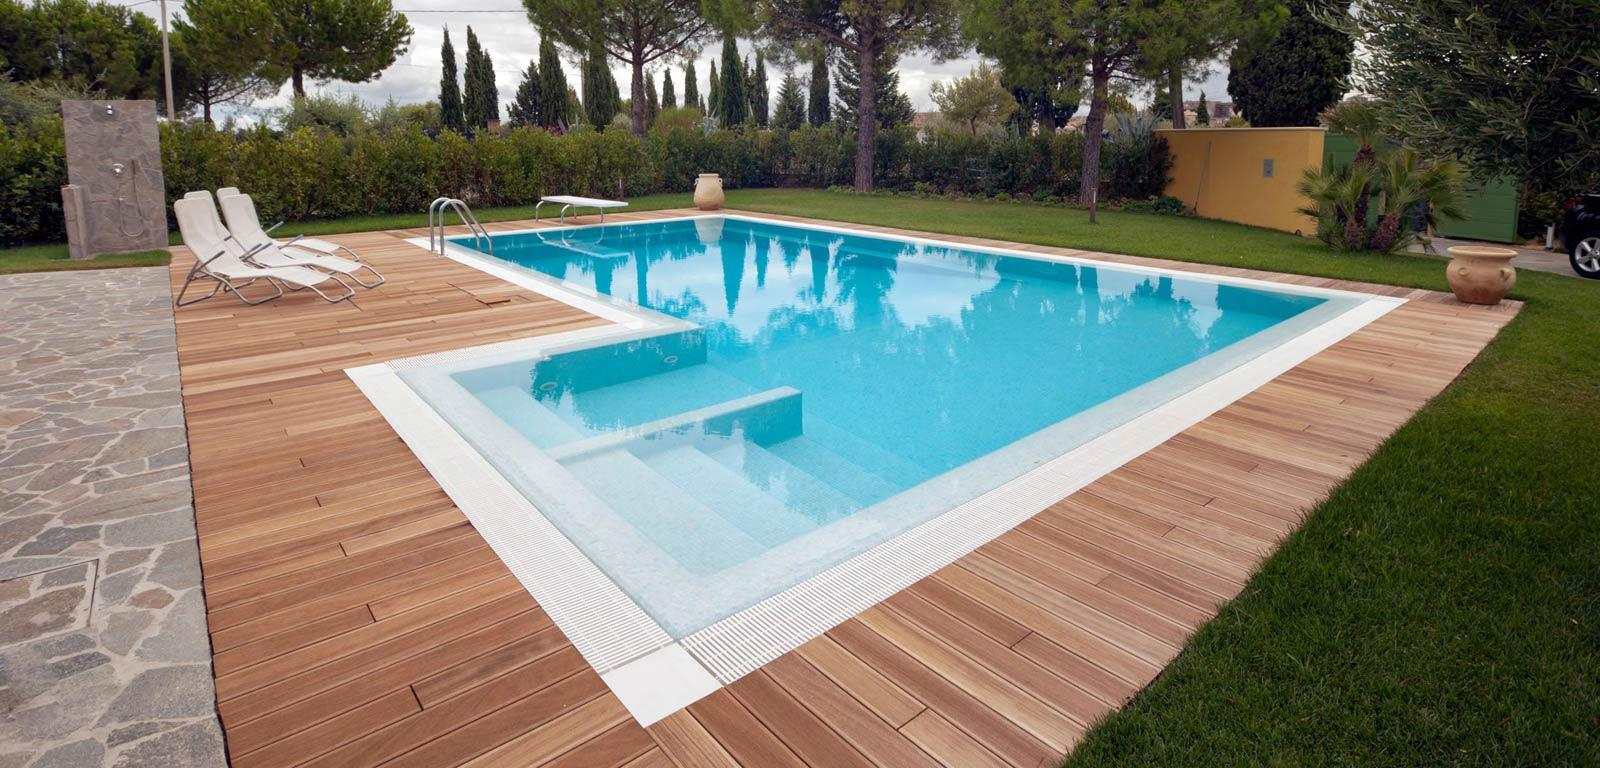 piscine materiali attrezzature e accessori in vendita al